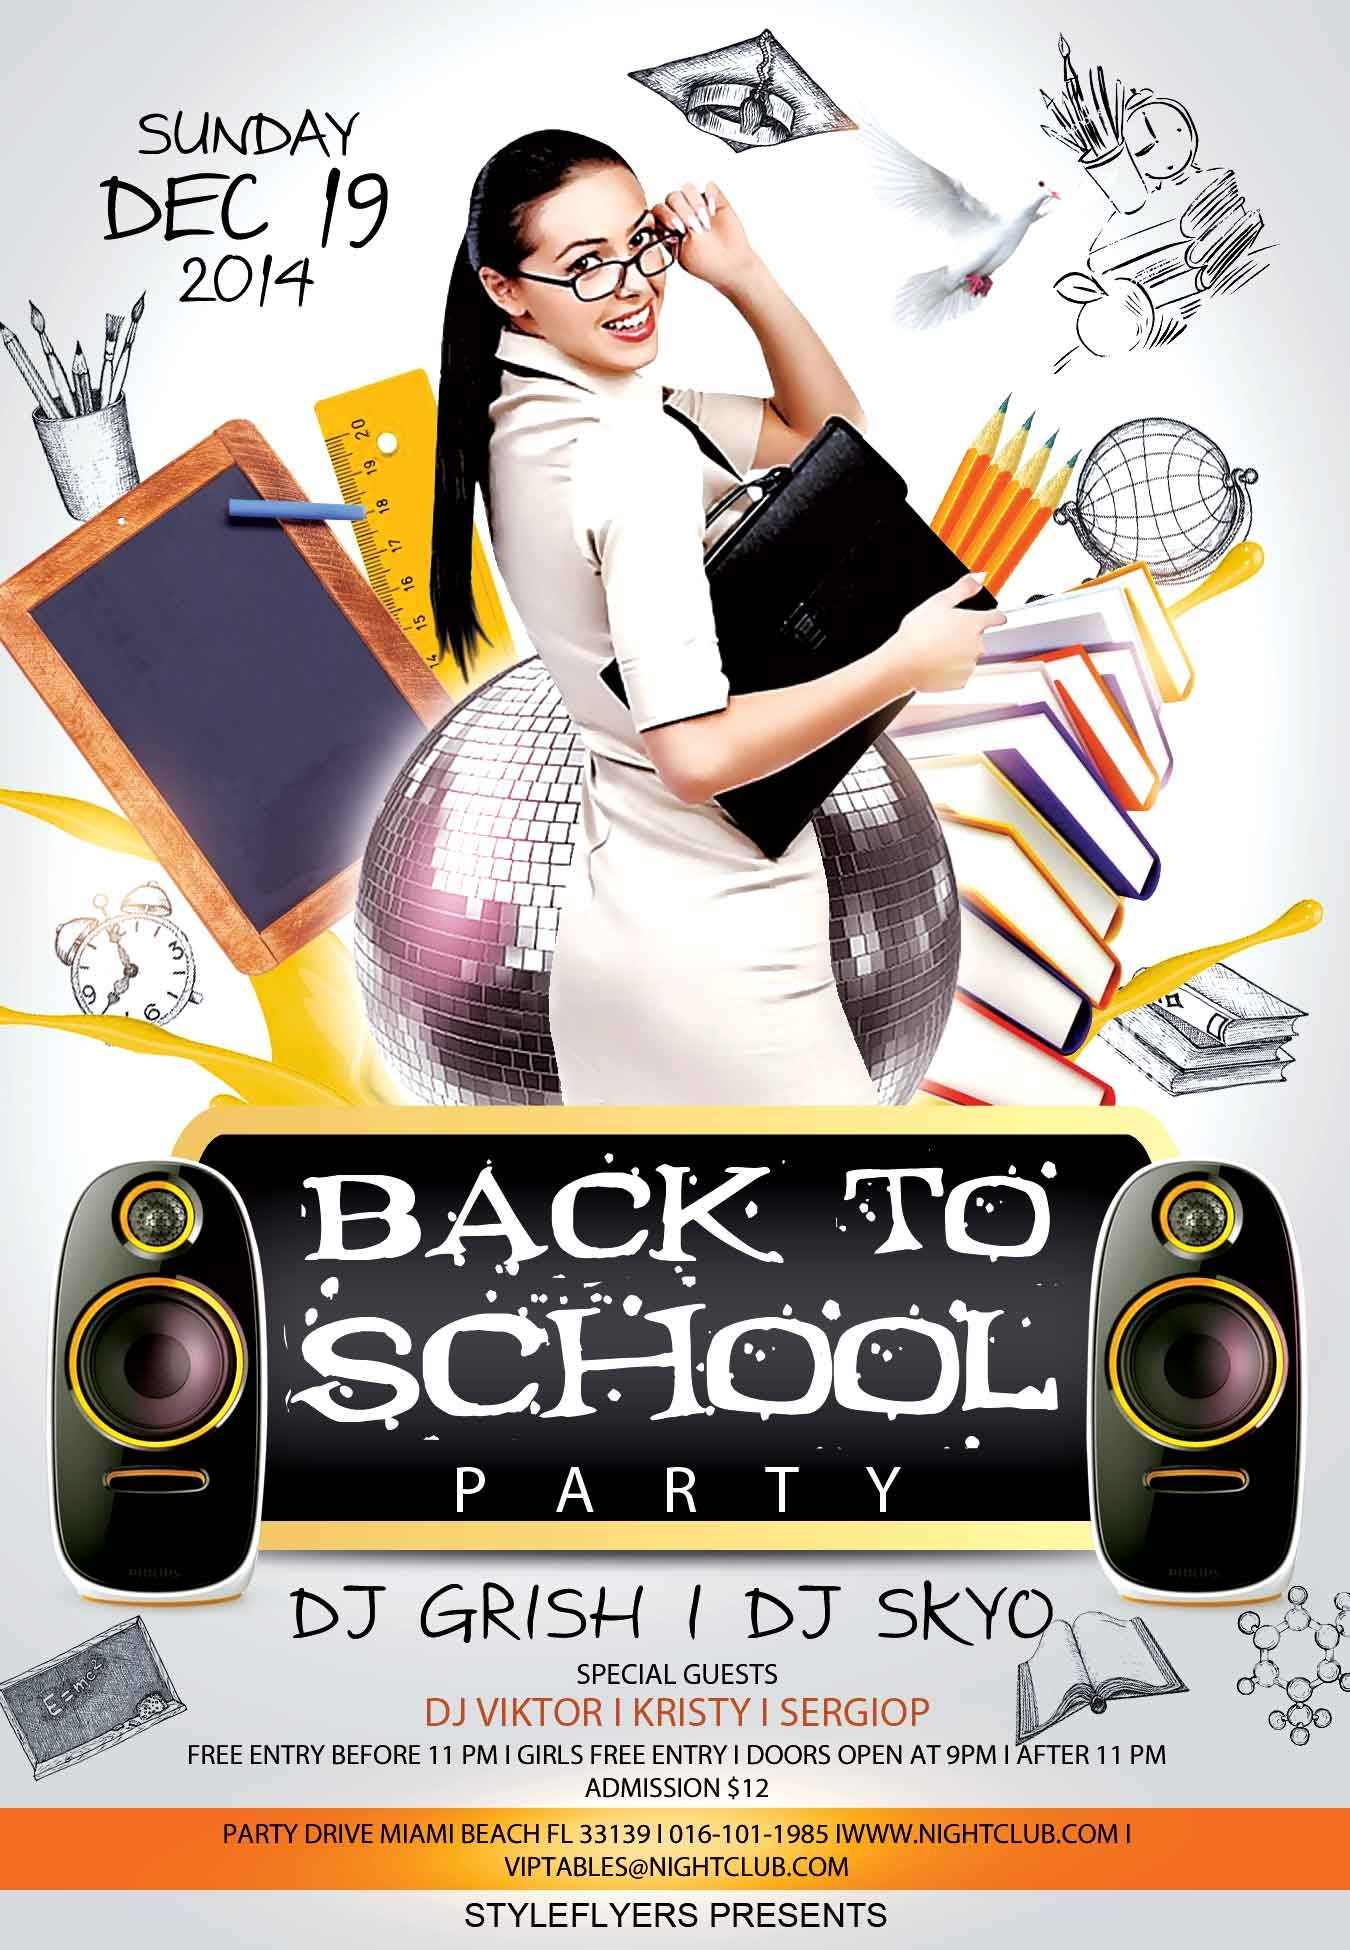 our back to school psd flyer template and arrange psd flyer template is an exclusive flyer template designed by styleflyers it s best solution for promoting your event party or business